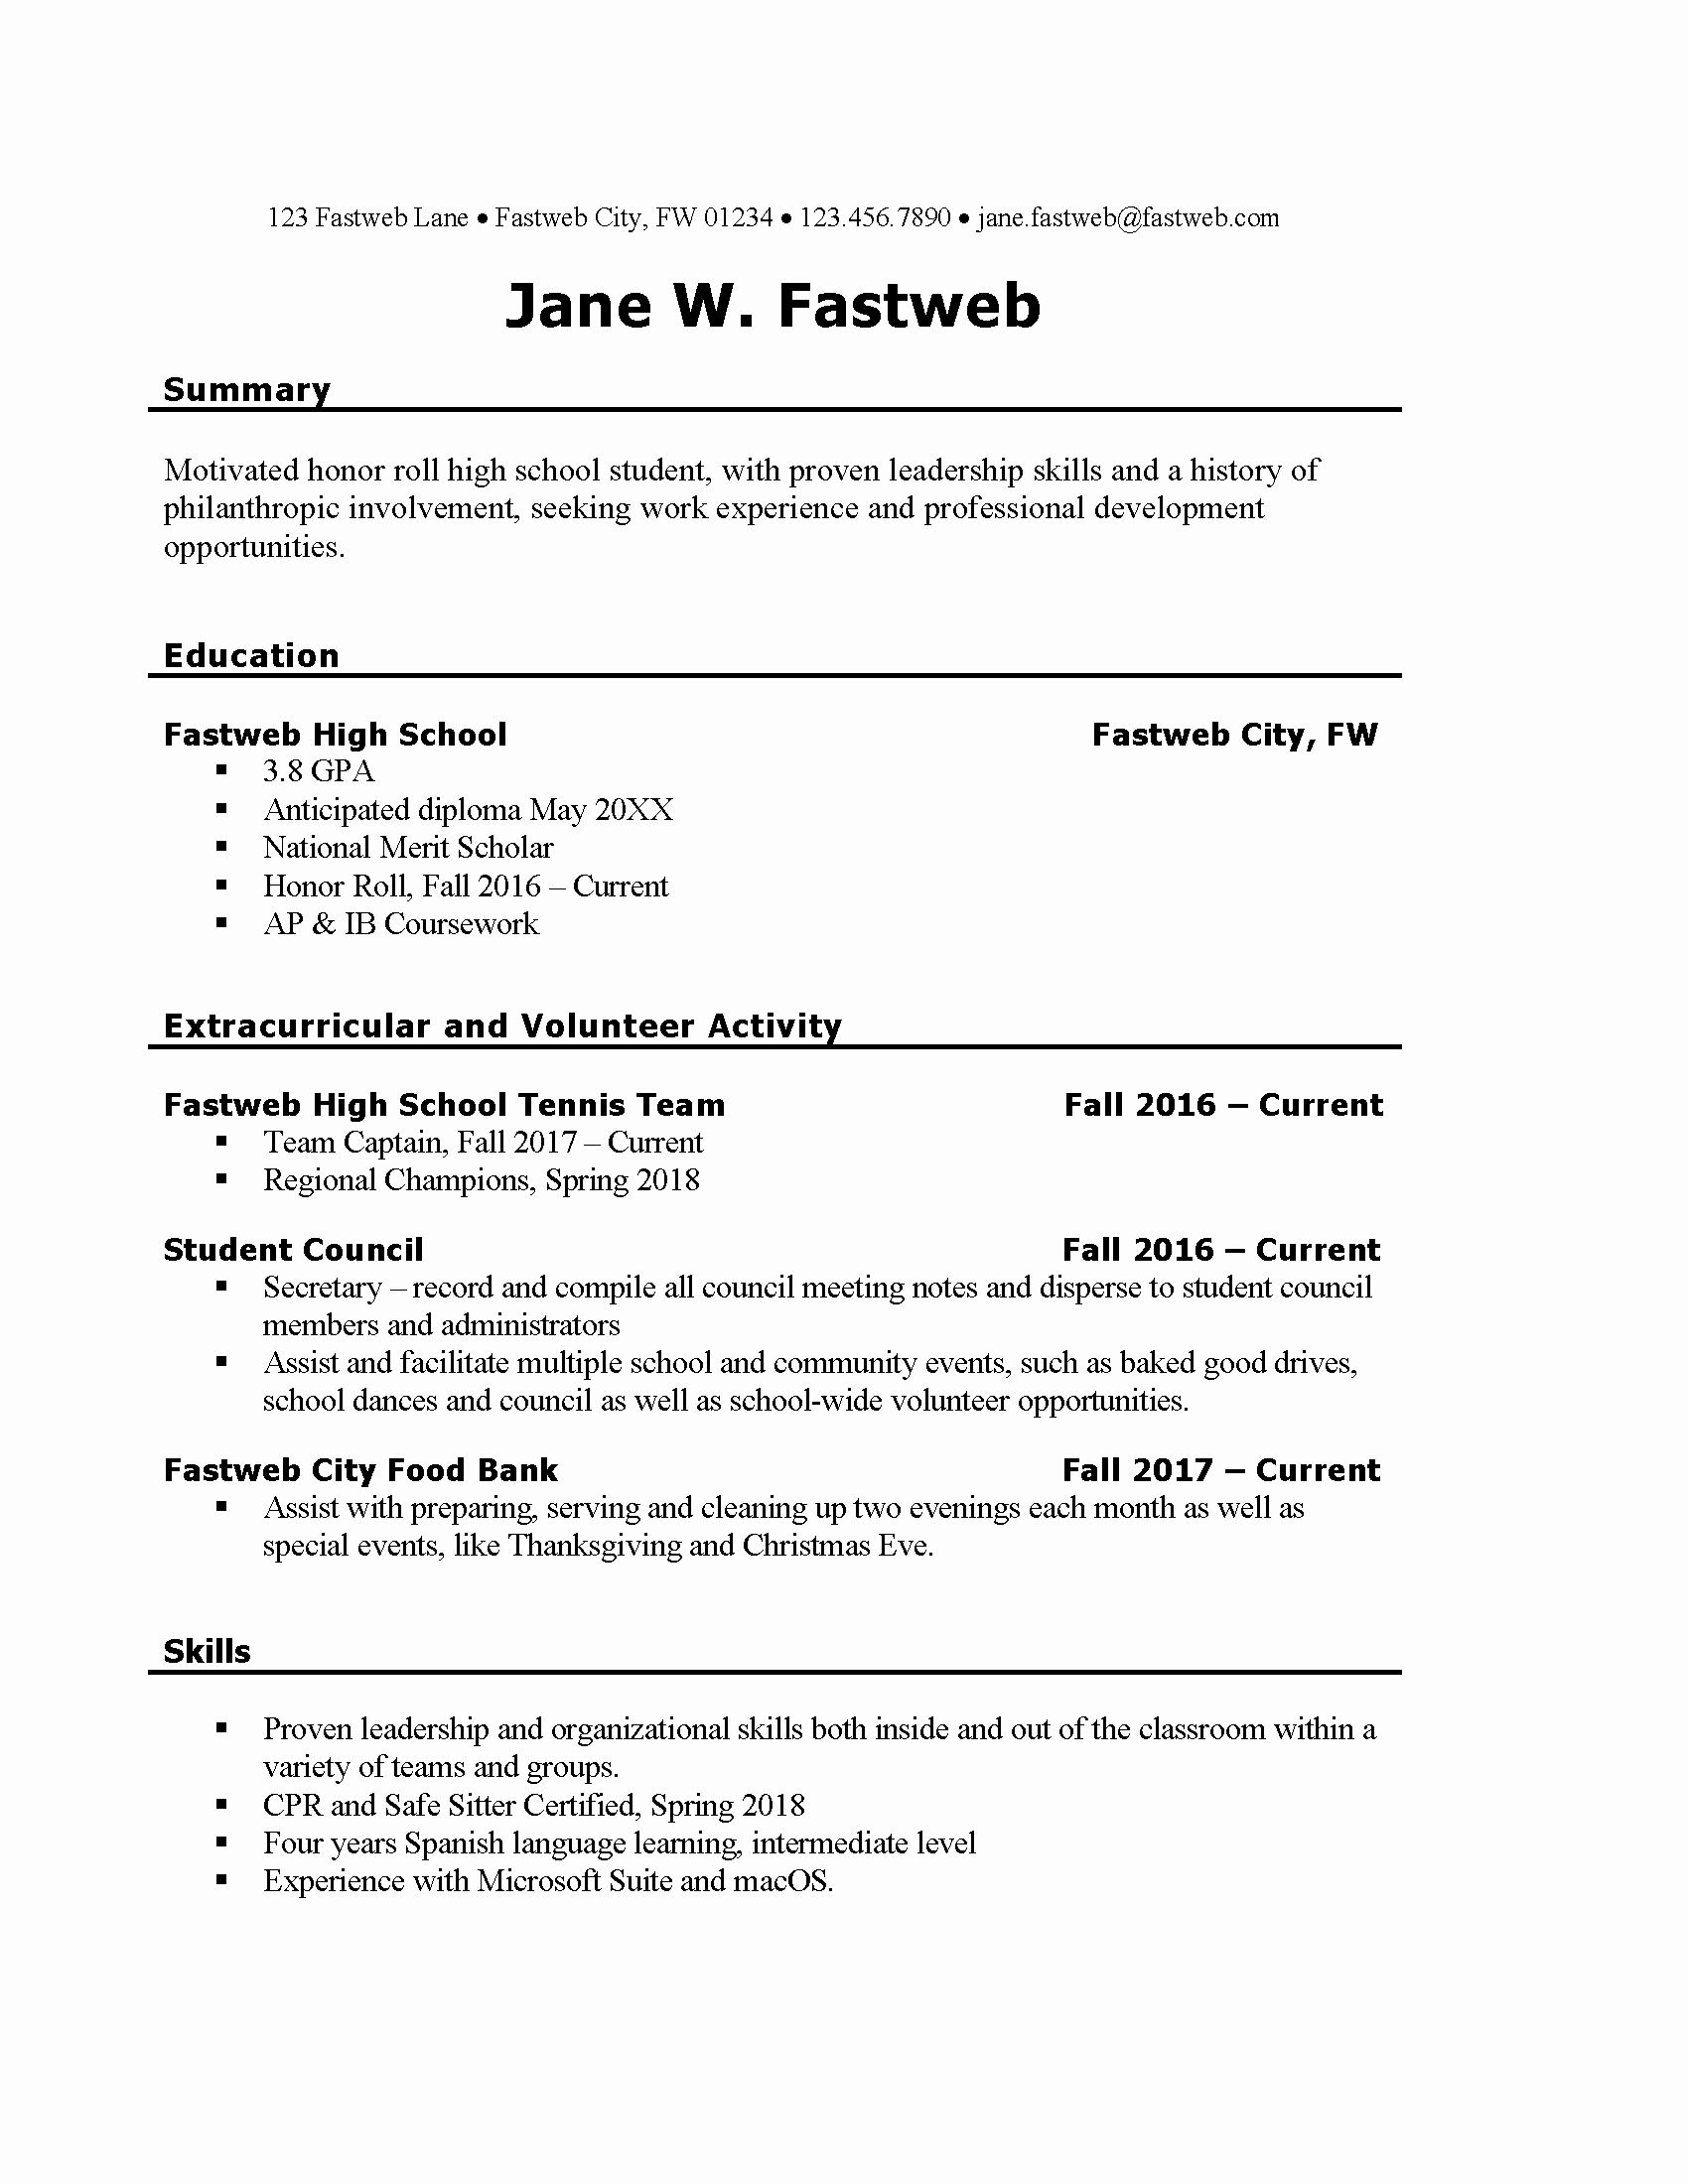 First Time Job Resume Unique First Part Time Job Resume Sample Job Resume Template Job Resume Examples Job Resume Samples